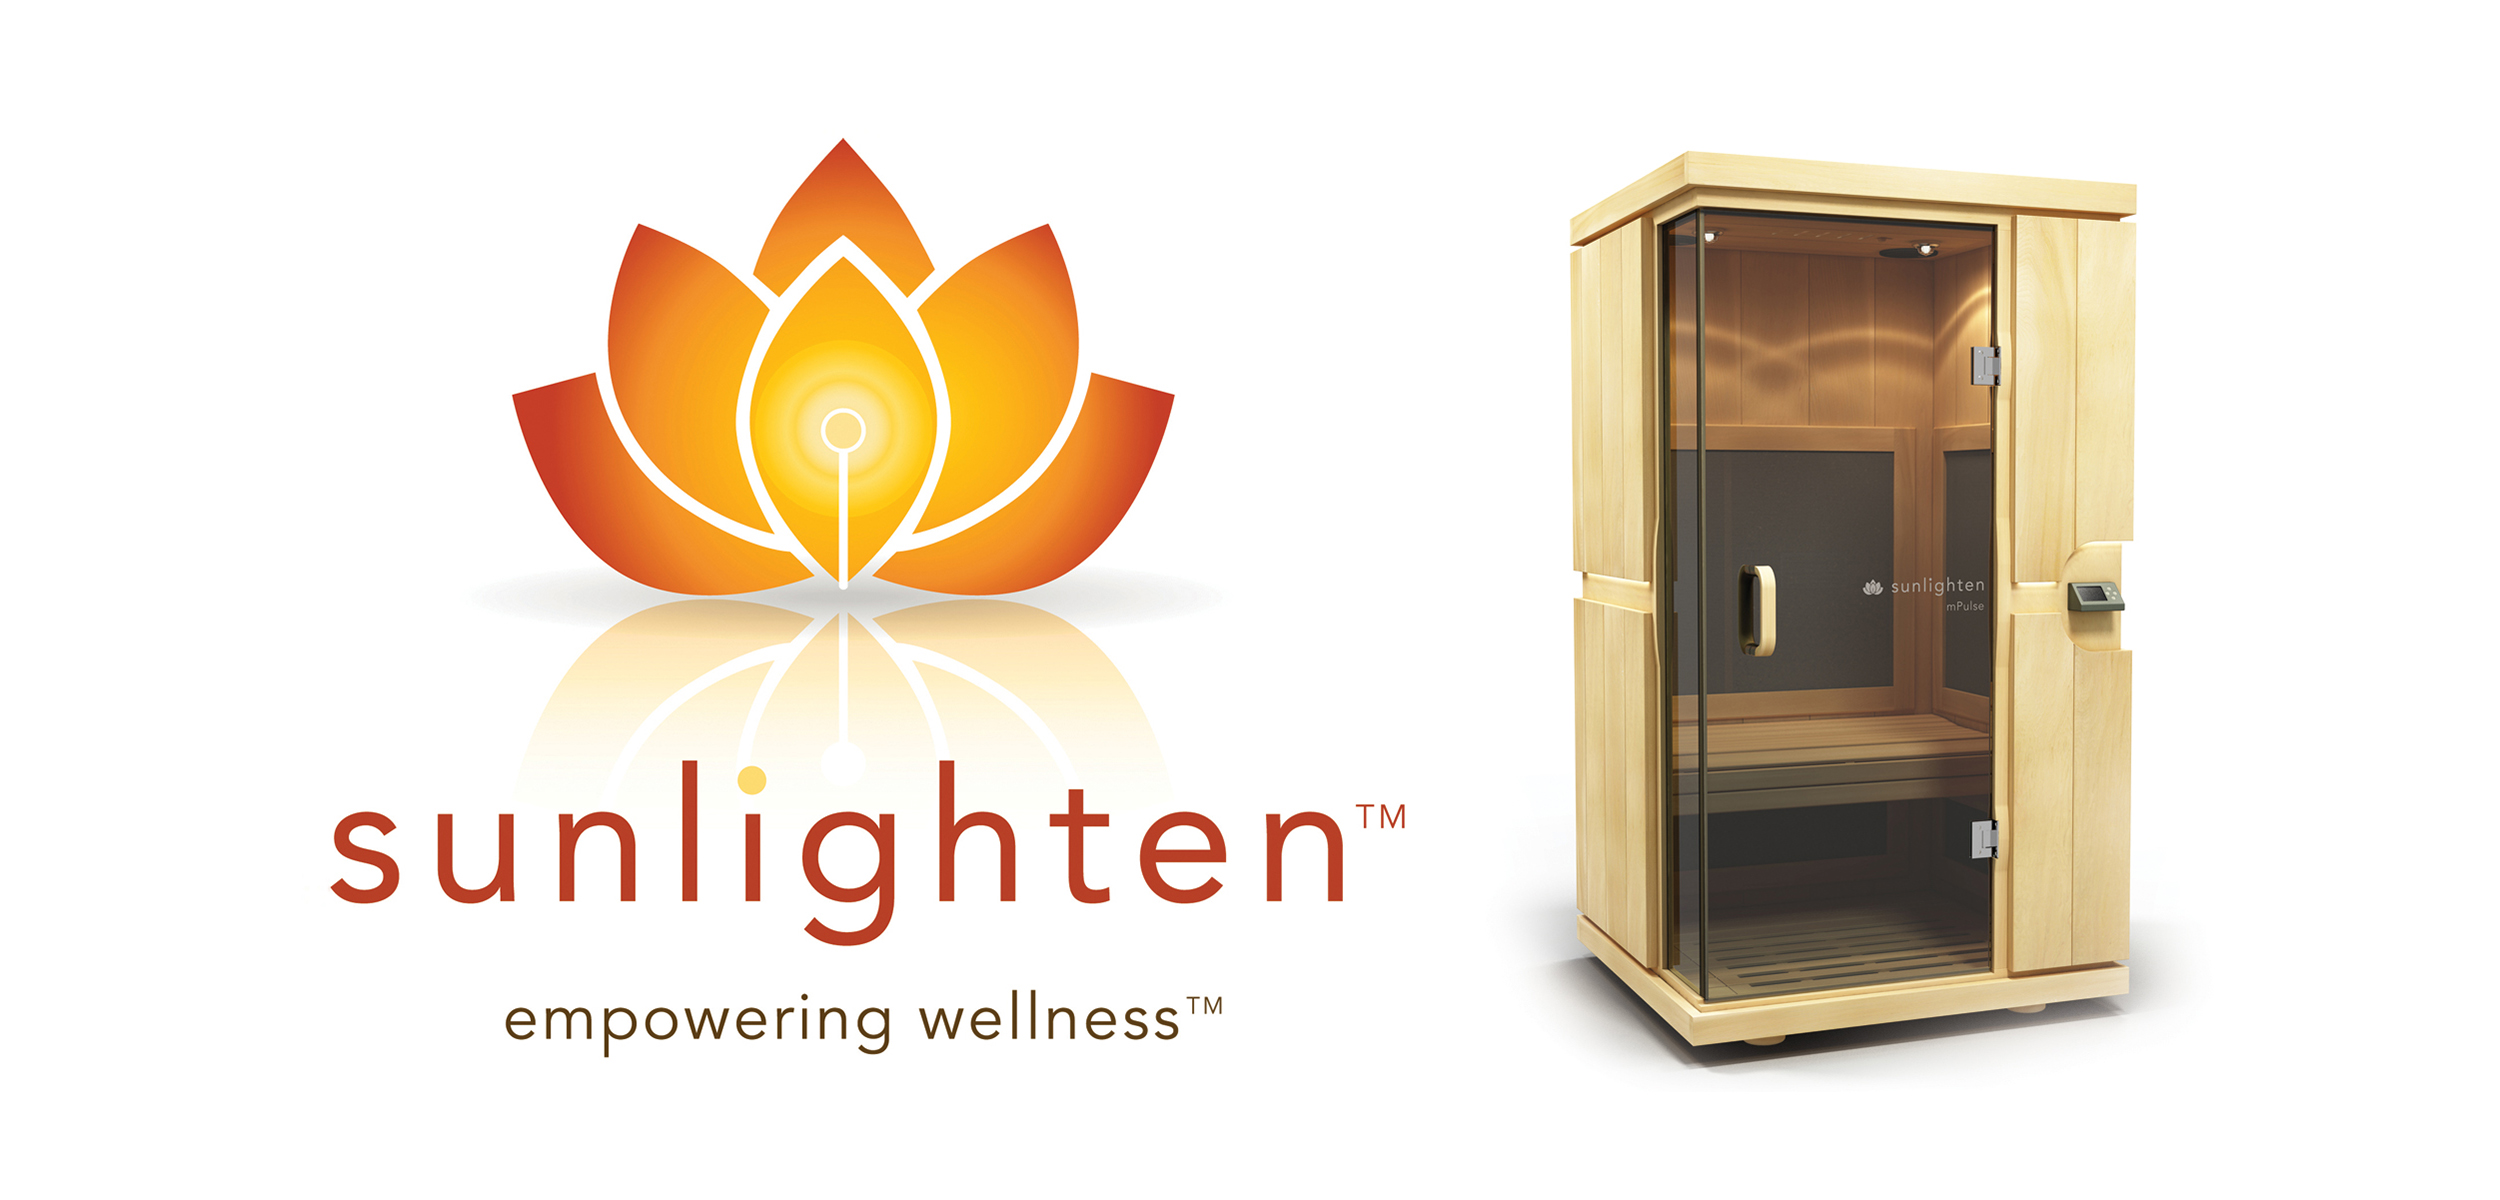 Sunlighten Infrared Sauna Ad